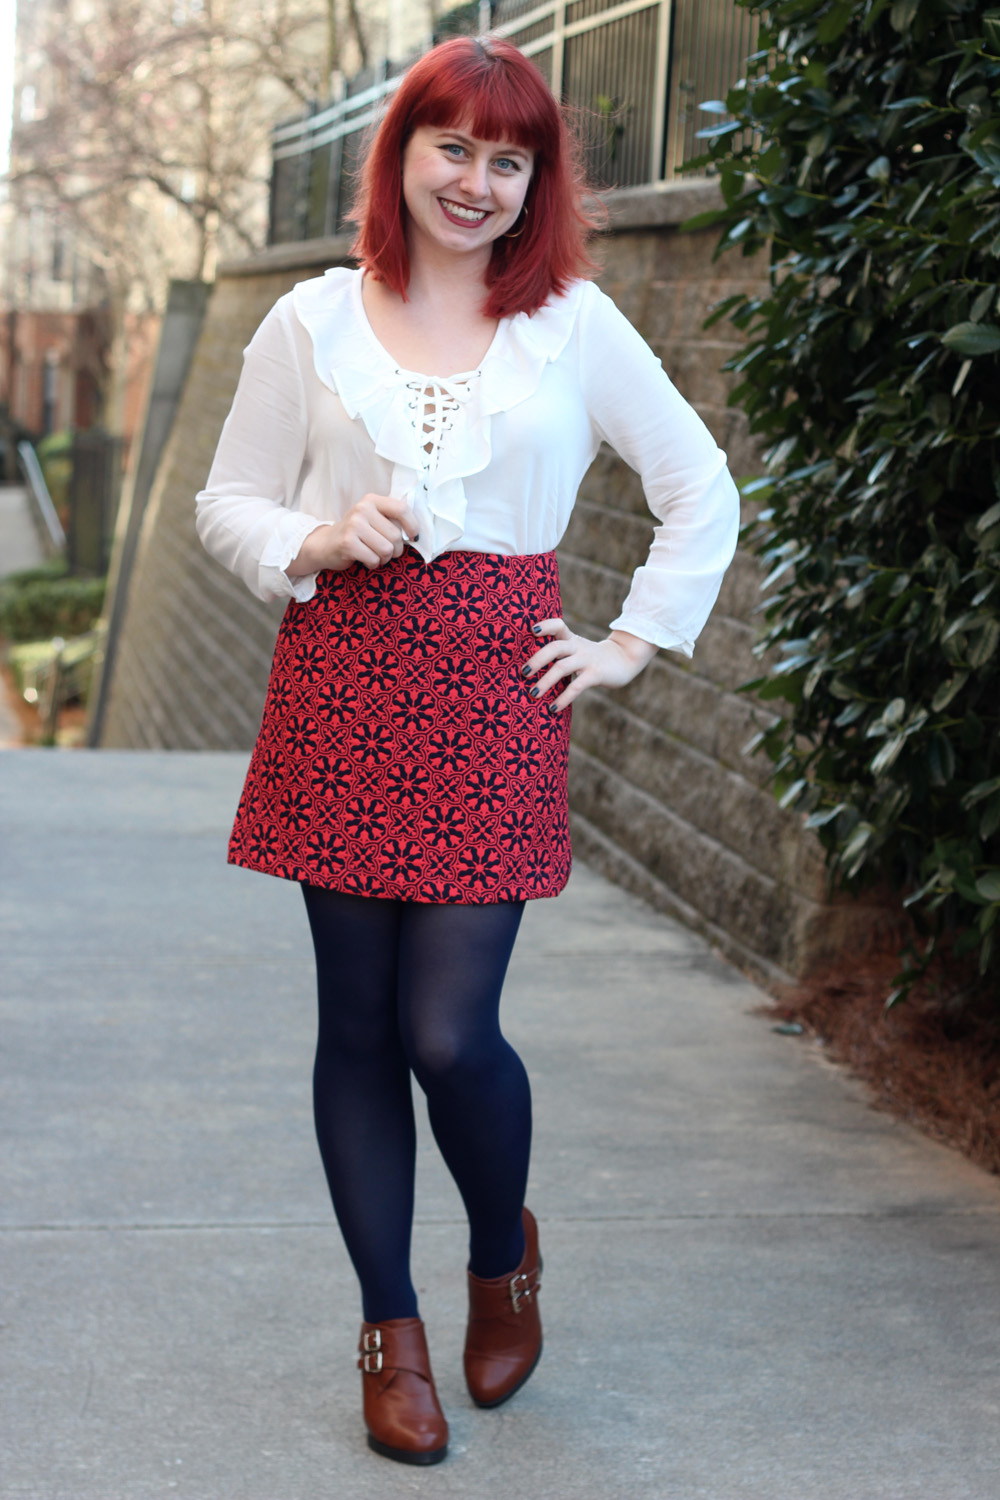 Retro Lace Up White Blouse with a Geometric Floral Mini Skirt, Navy Blue Tights, and Tall Tawny Brown Ankle Boots